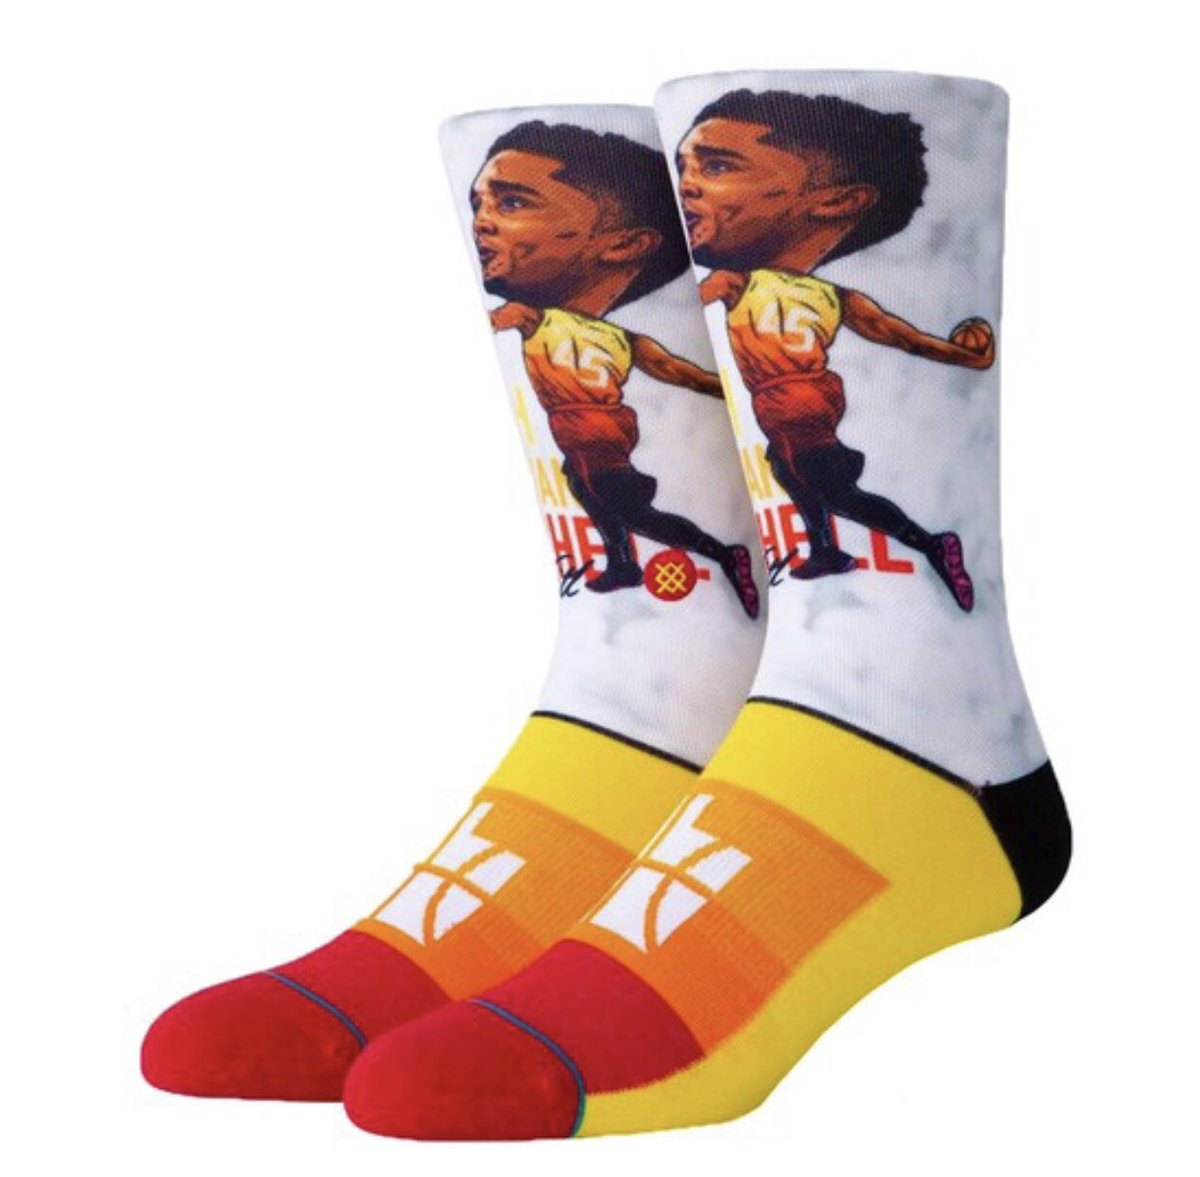 b96dc0e5219 Donovan Mitchell, Vivint Arena, Utah Jazz and Stance